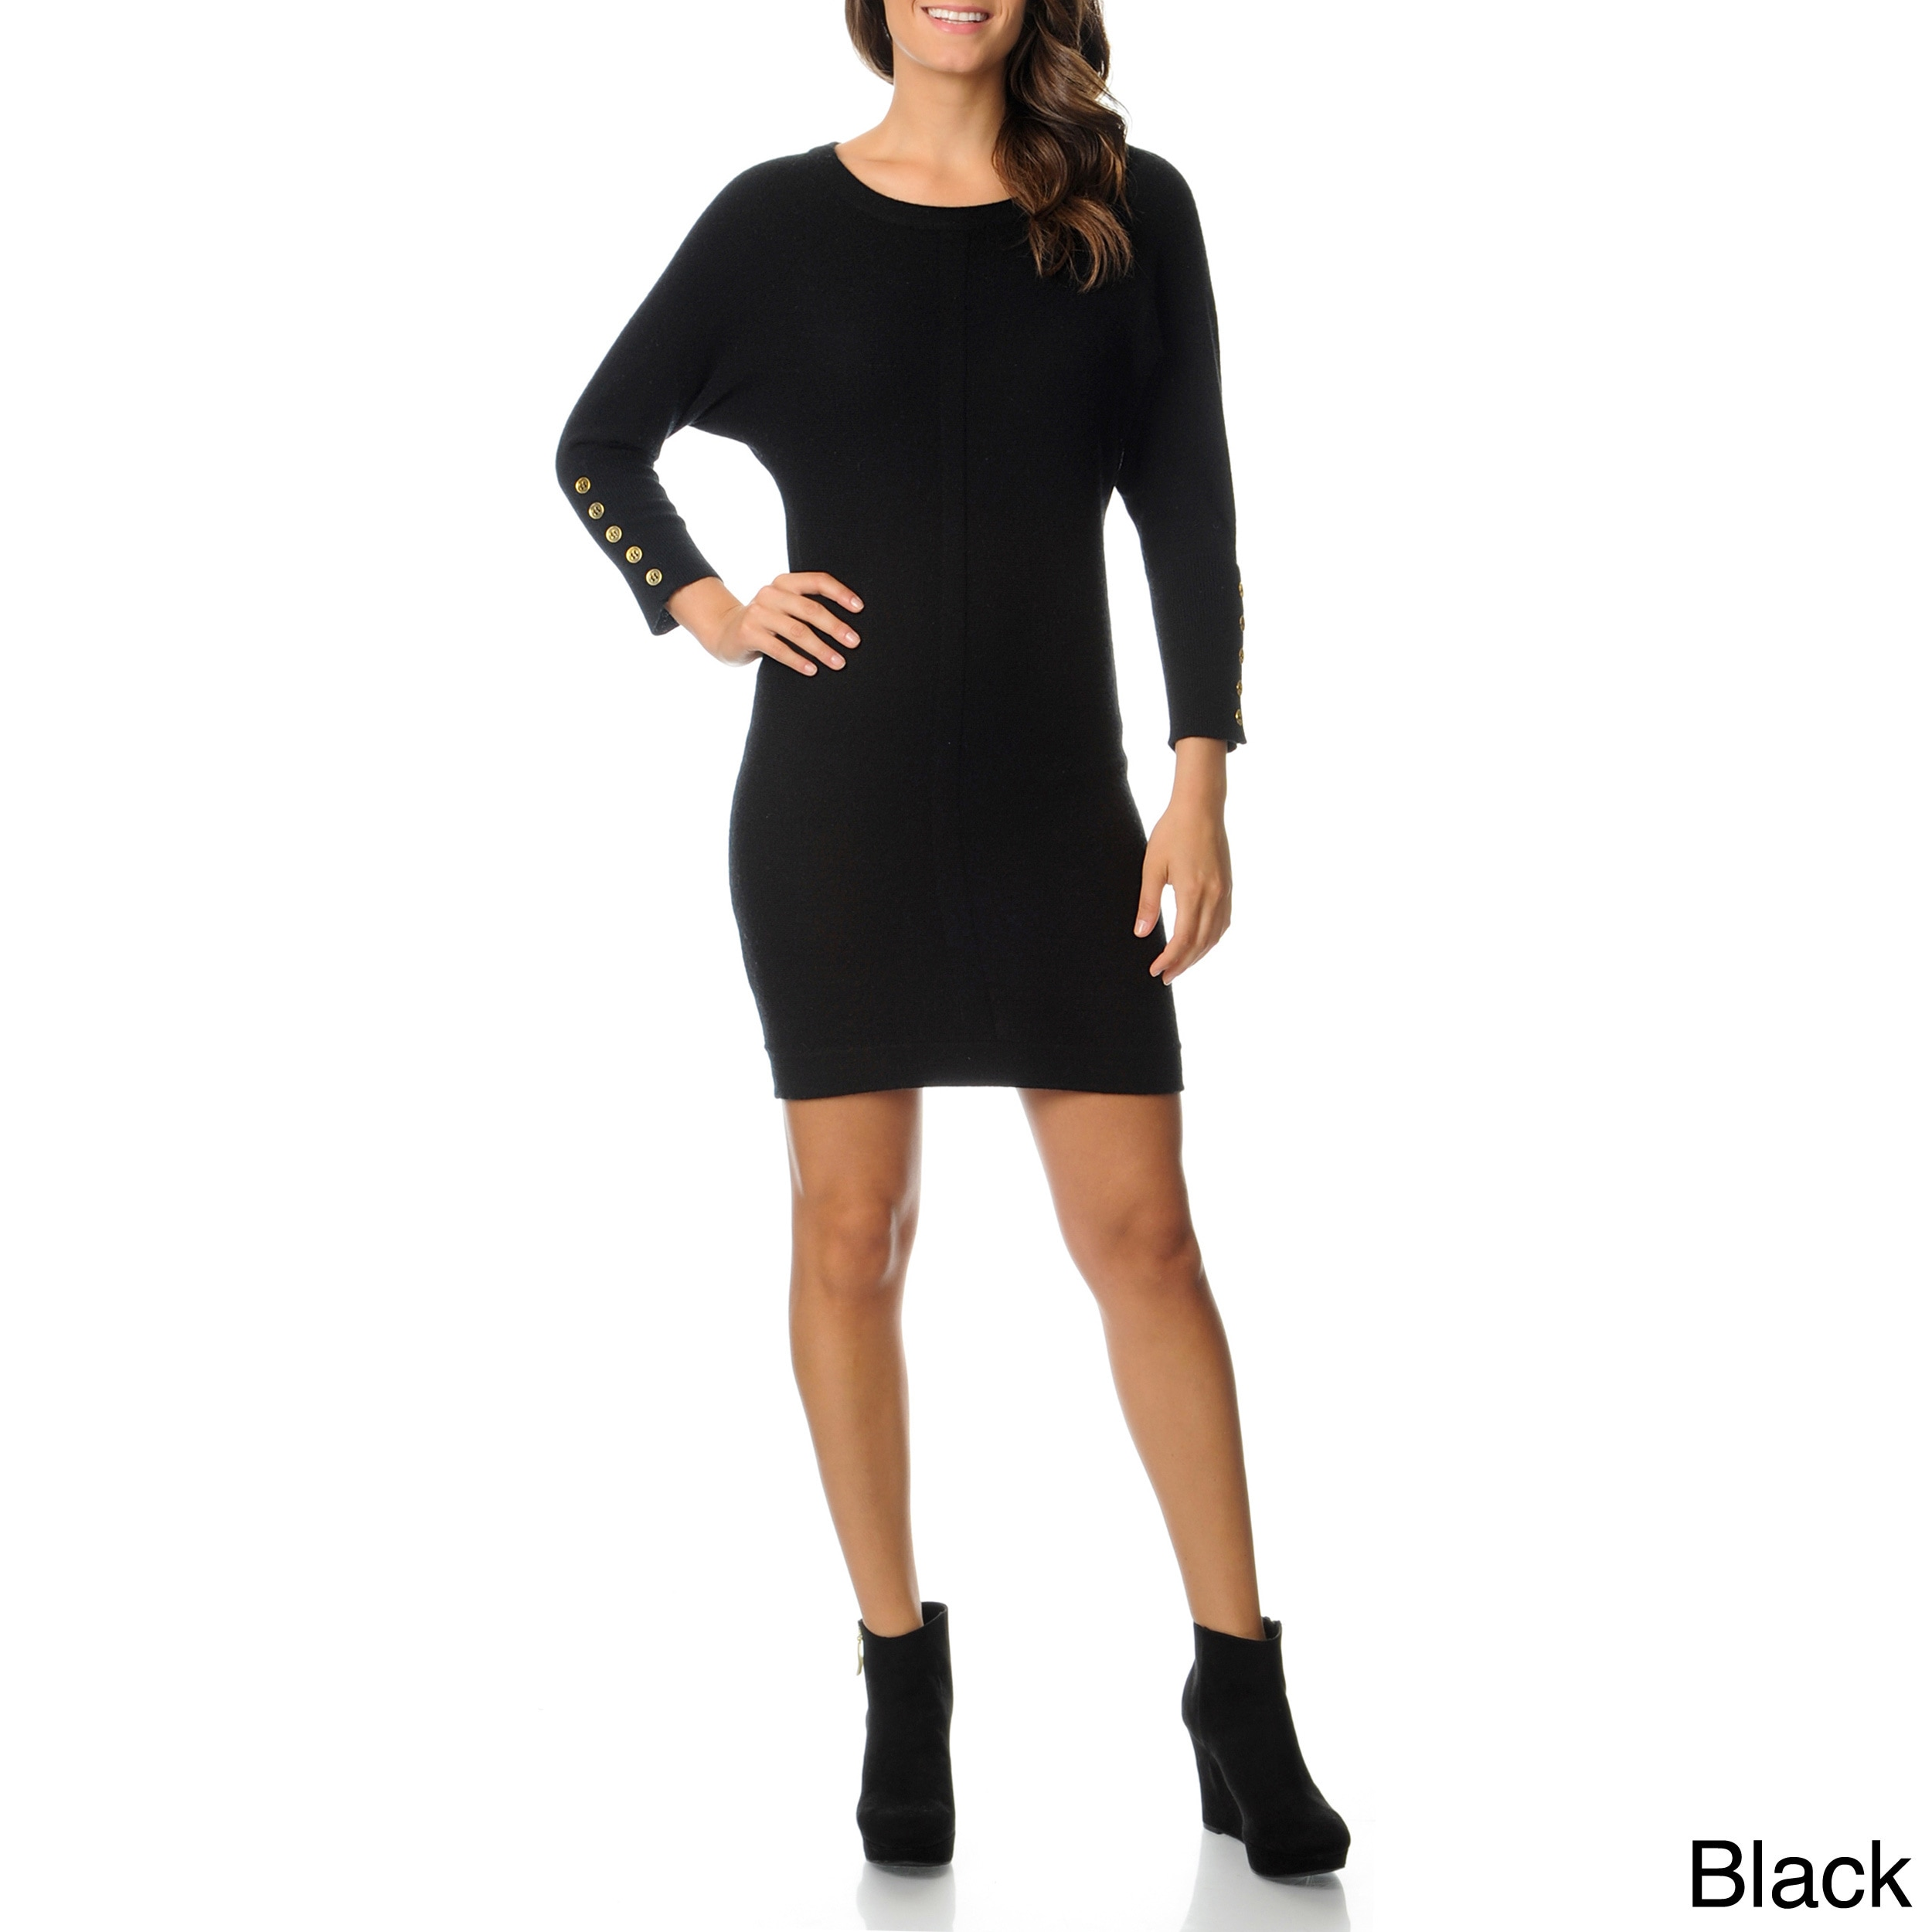 Ply Cashmere Womens Boat Neck Sweater Dress